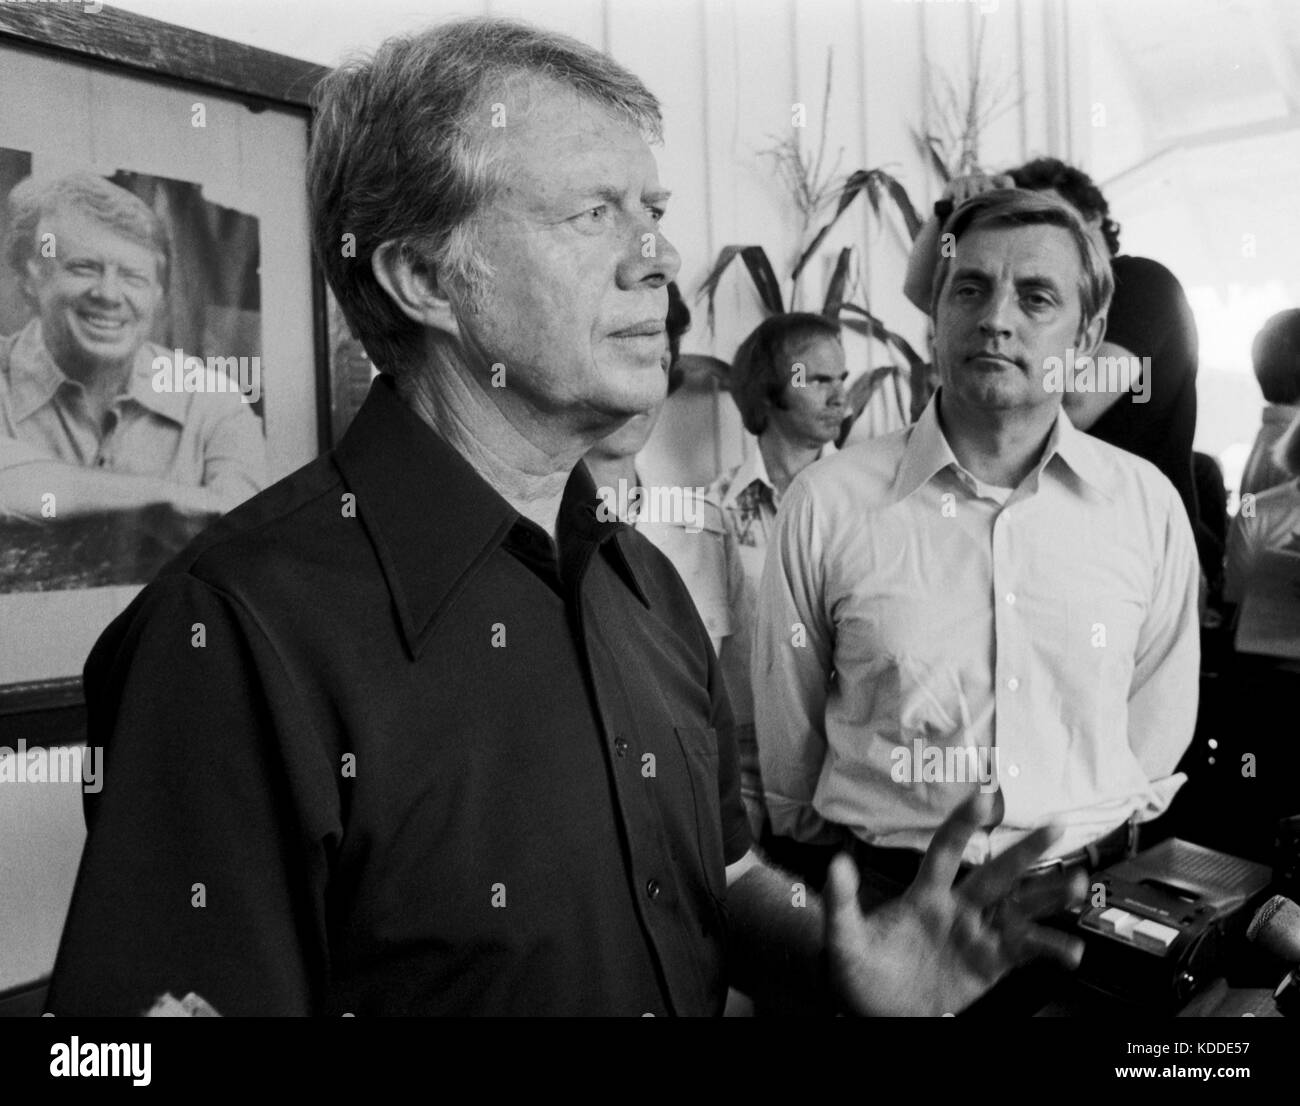 1976 Democratic presidential nominee Jimmy Carter and his running mate Walter 'Fritz' Mondale speak to the - Stock Image